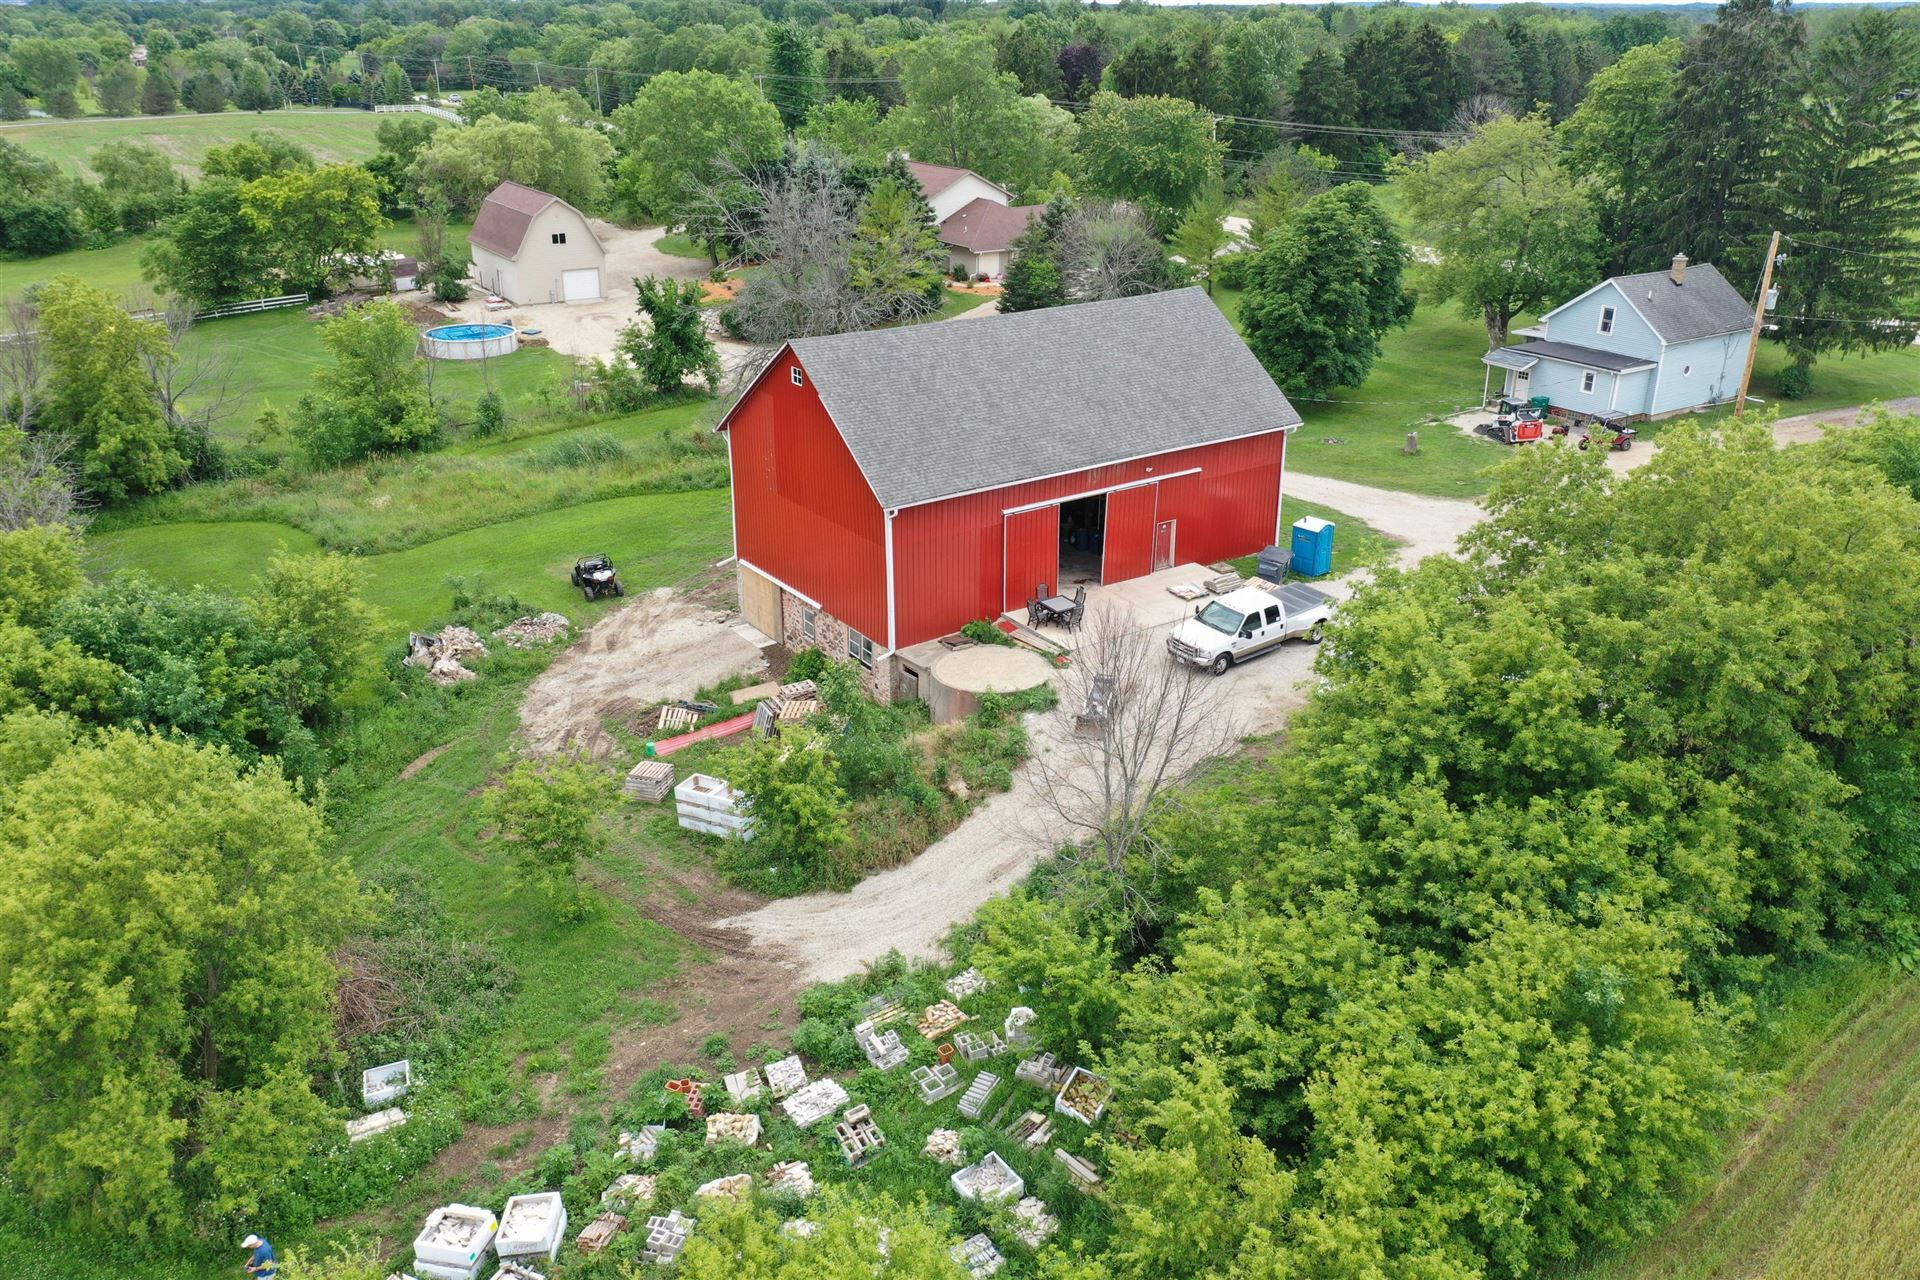 12428 N Wasaukee Rd, Mequon, WI 53097 - #: 1753285